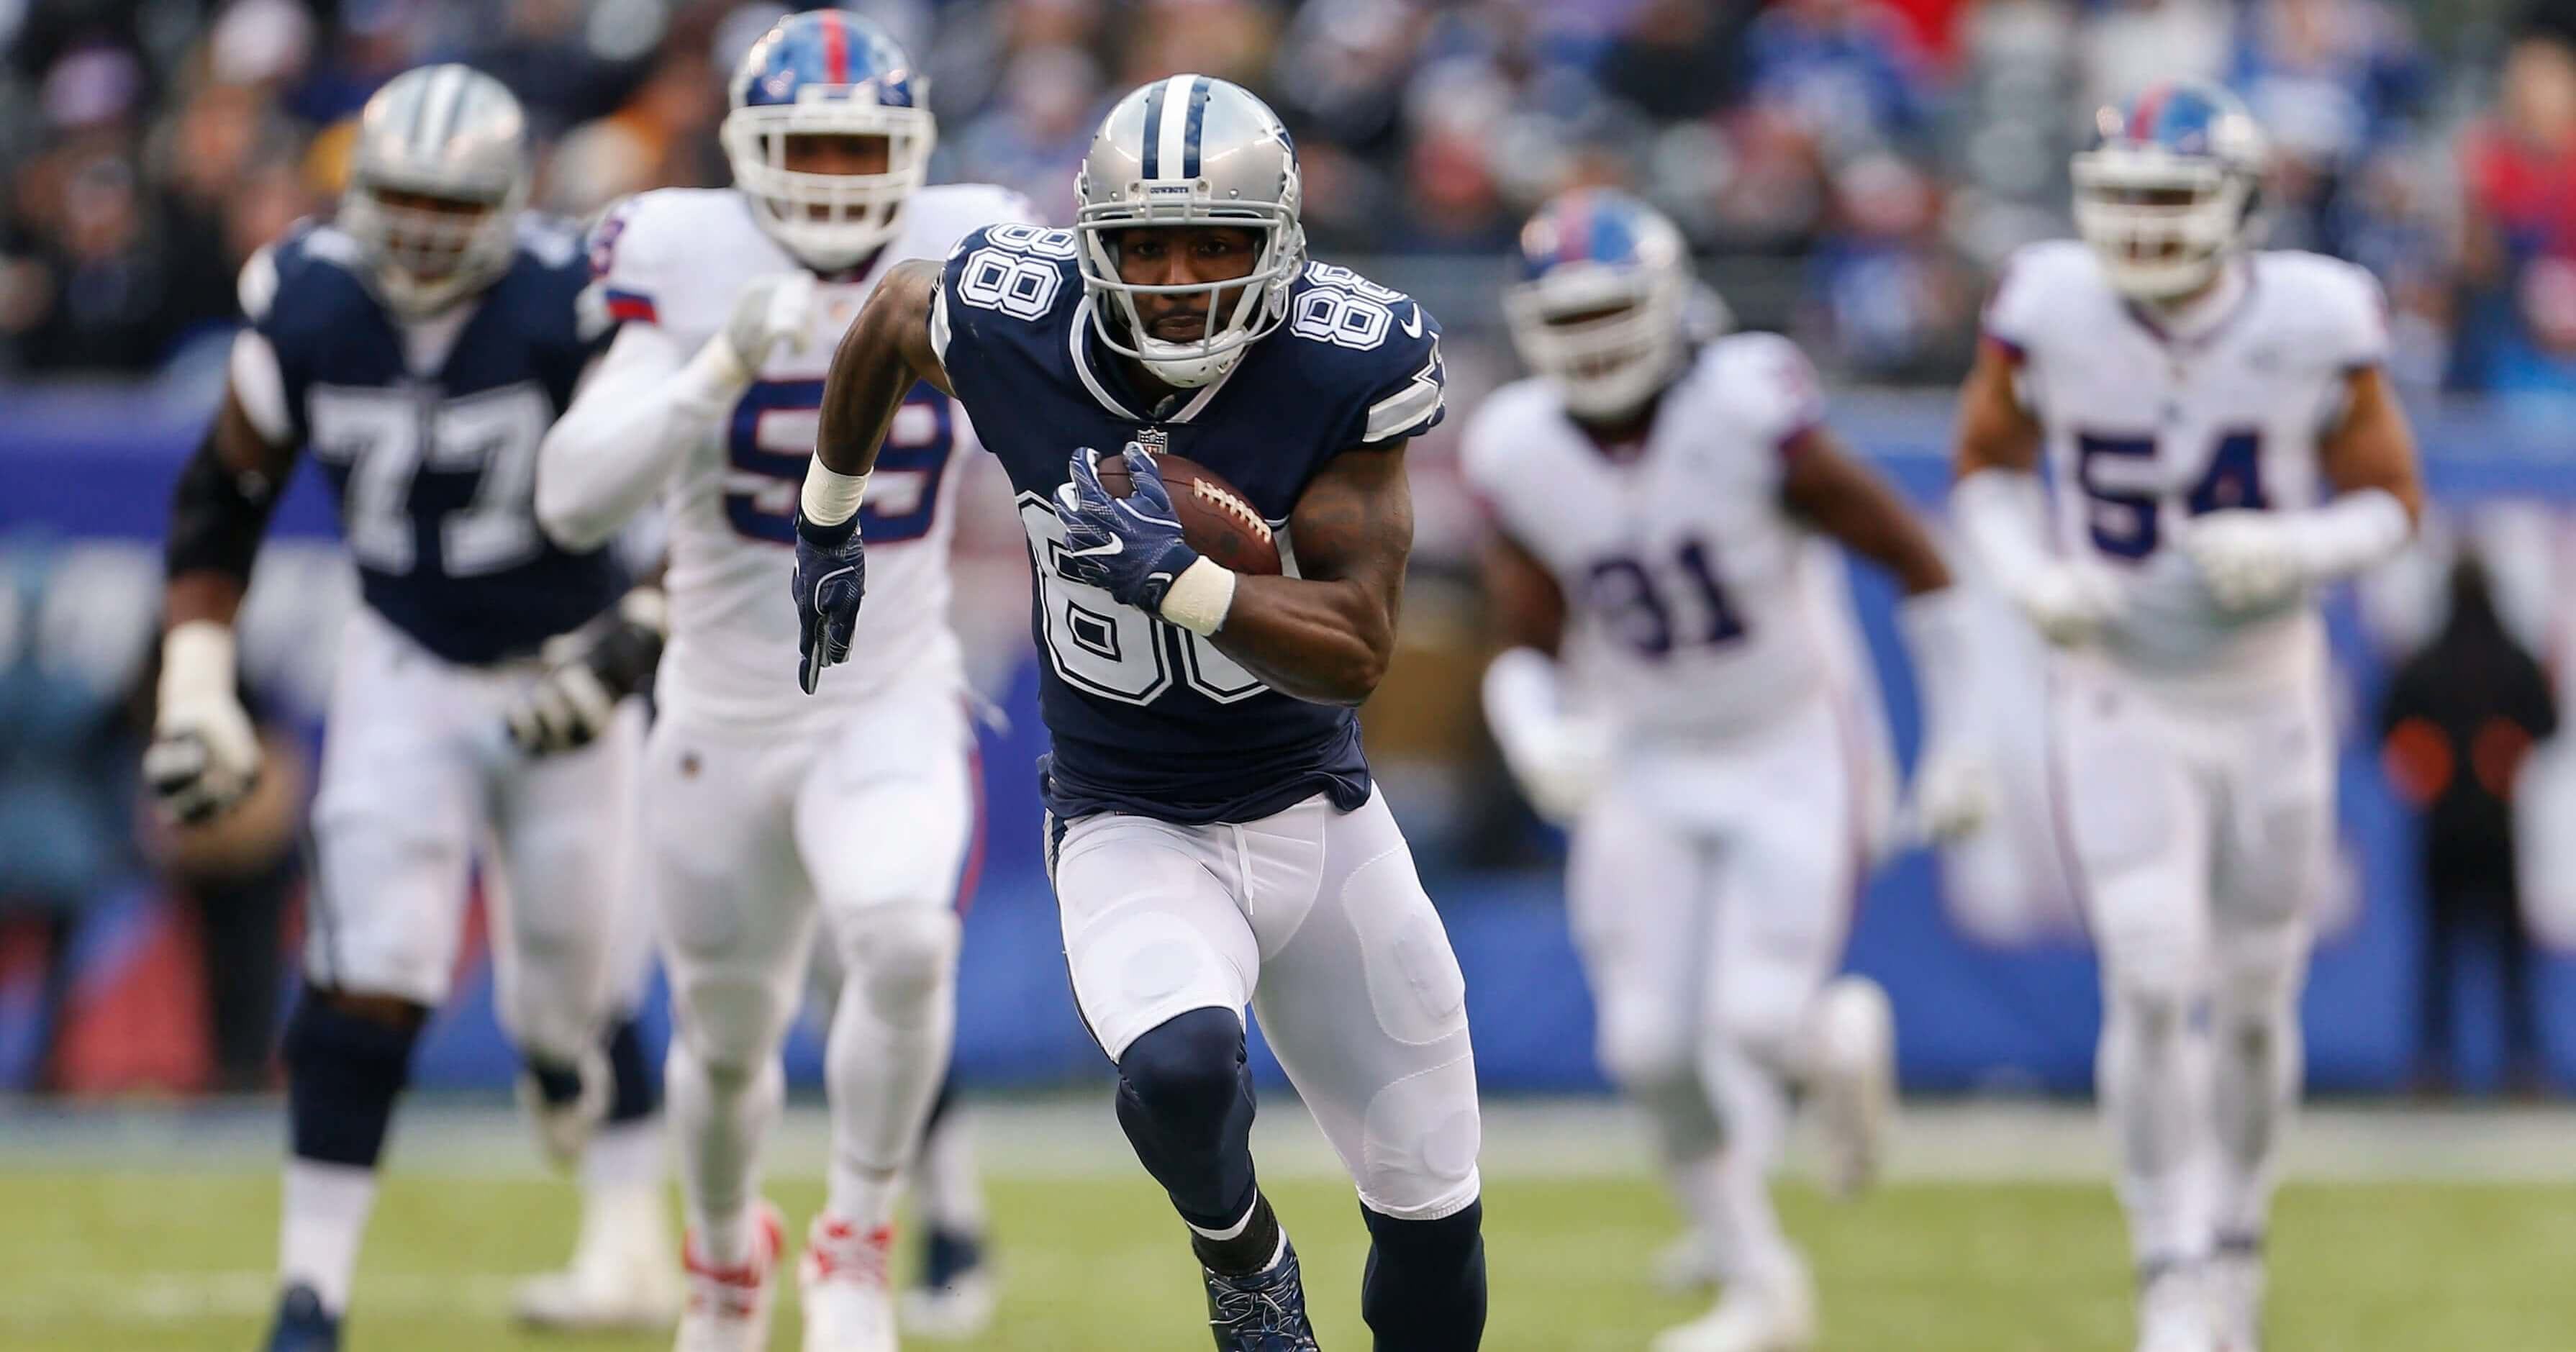 Wide receiver Dez Bryant runs for a touchdown last year as a member of the Dallas Cowboys.